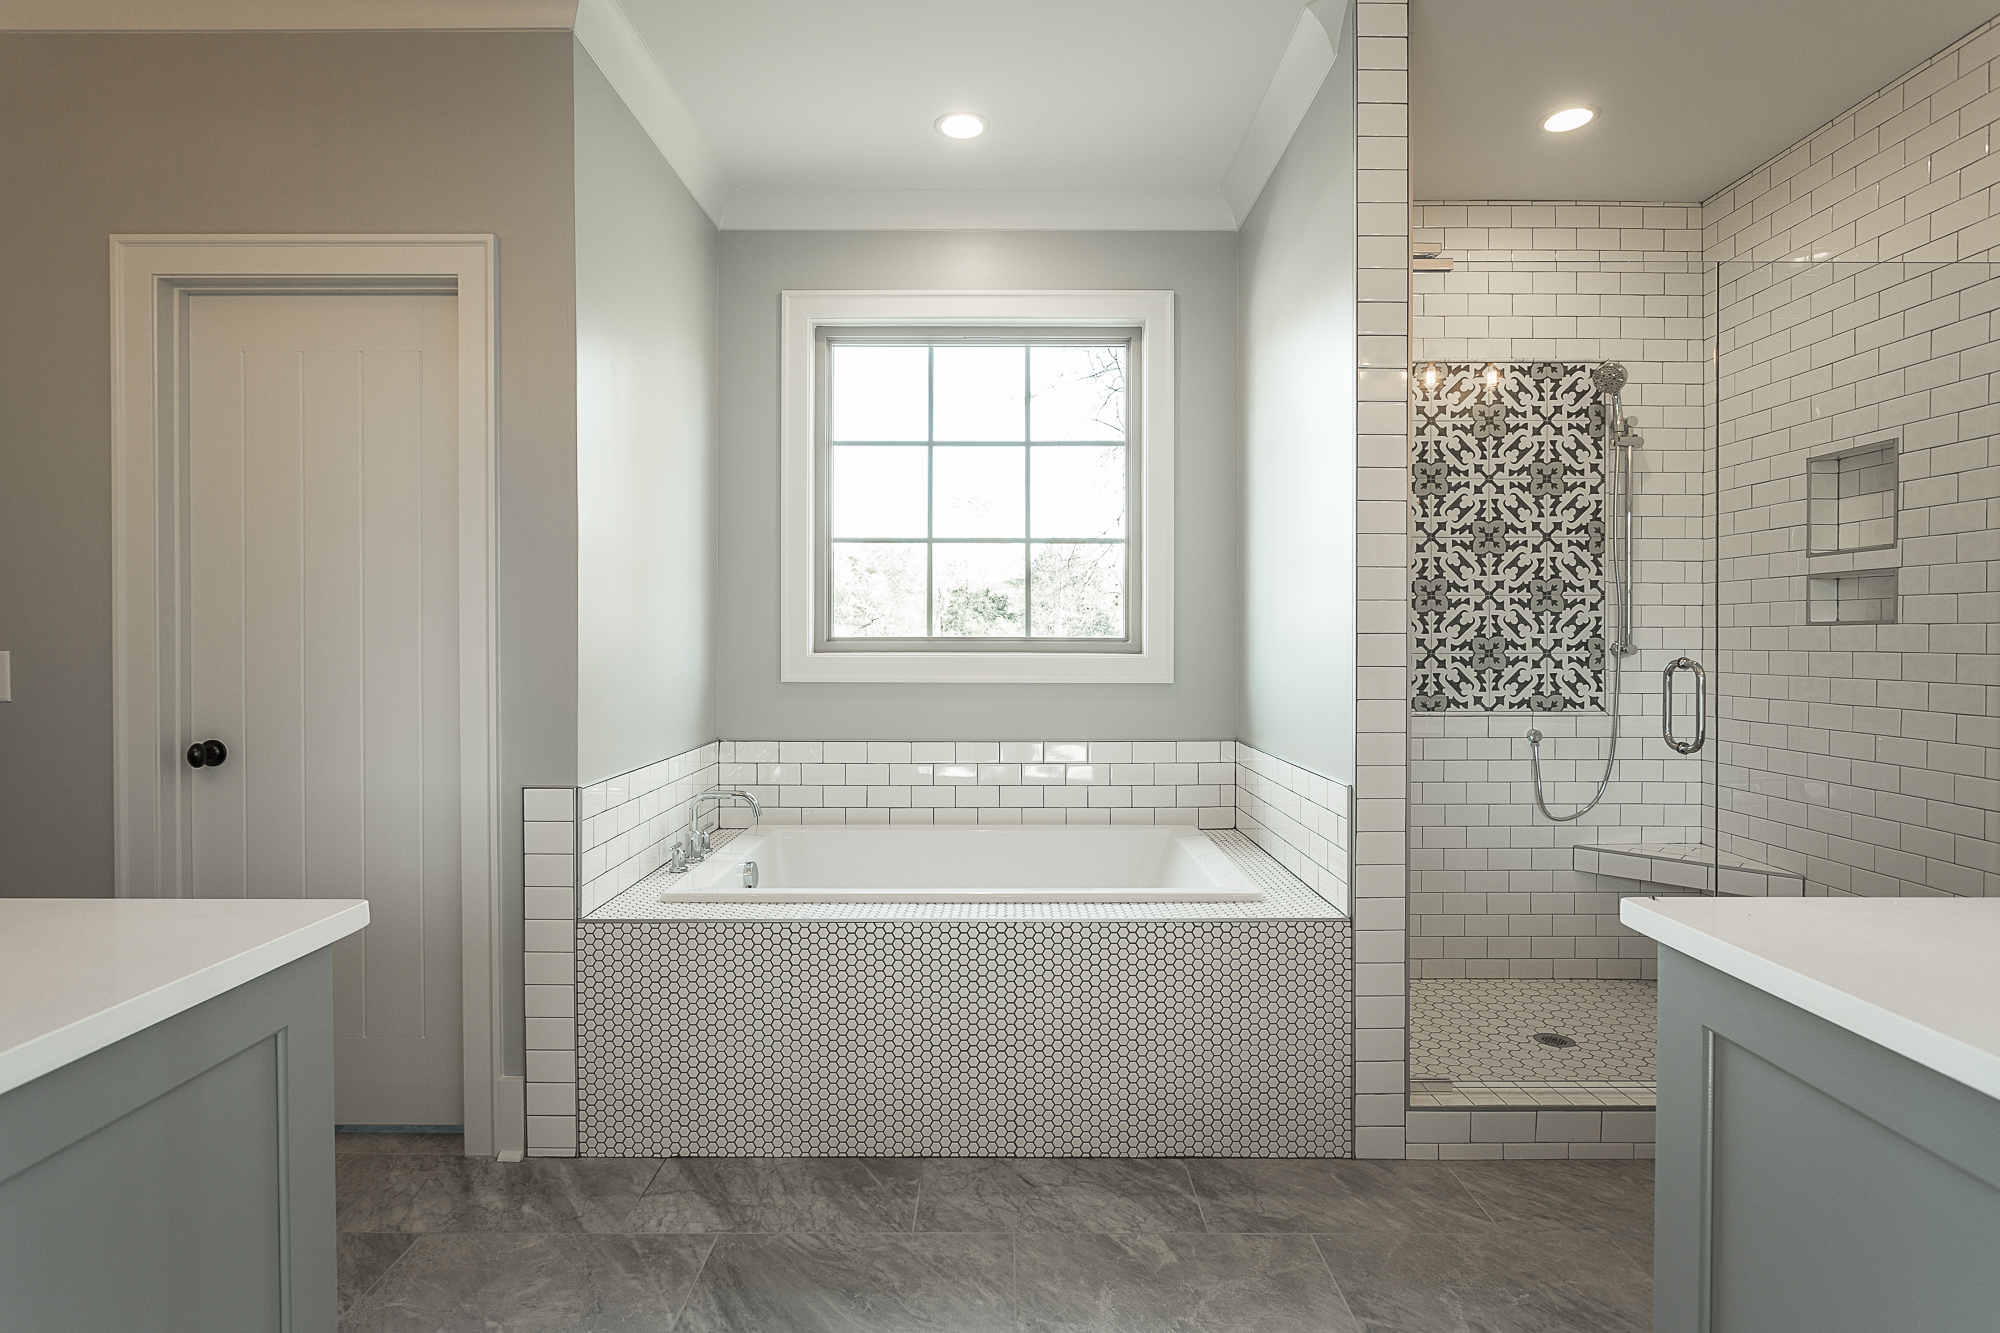 lot 3 selcer bathroom tile.jpg